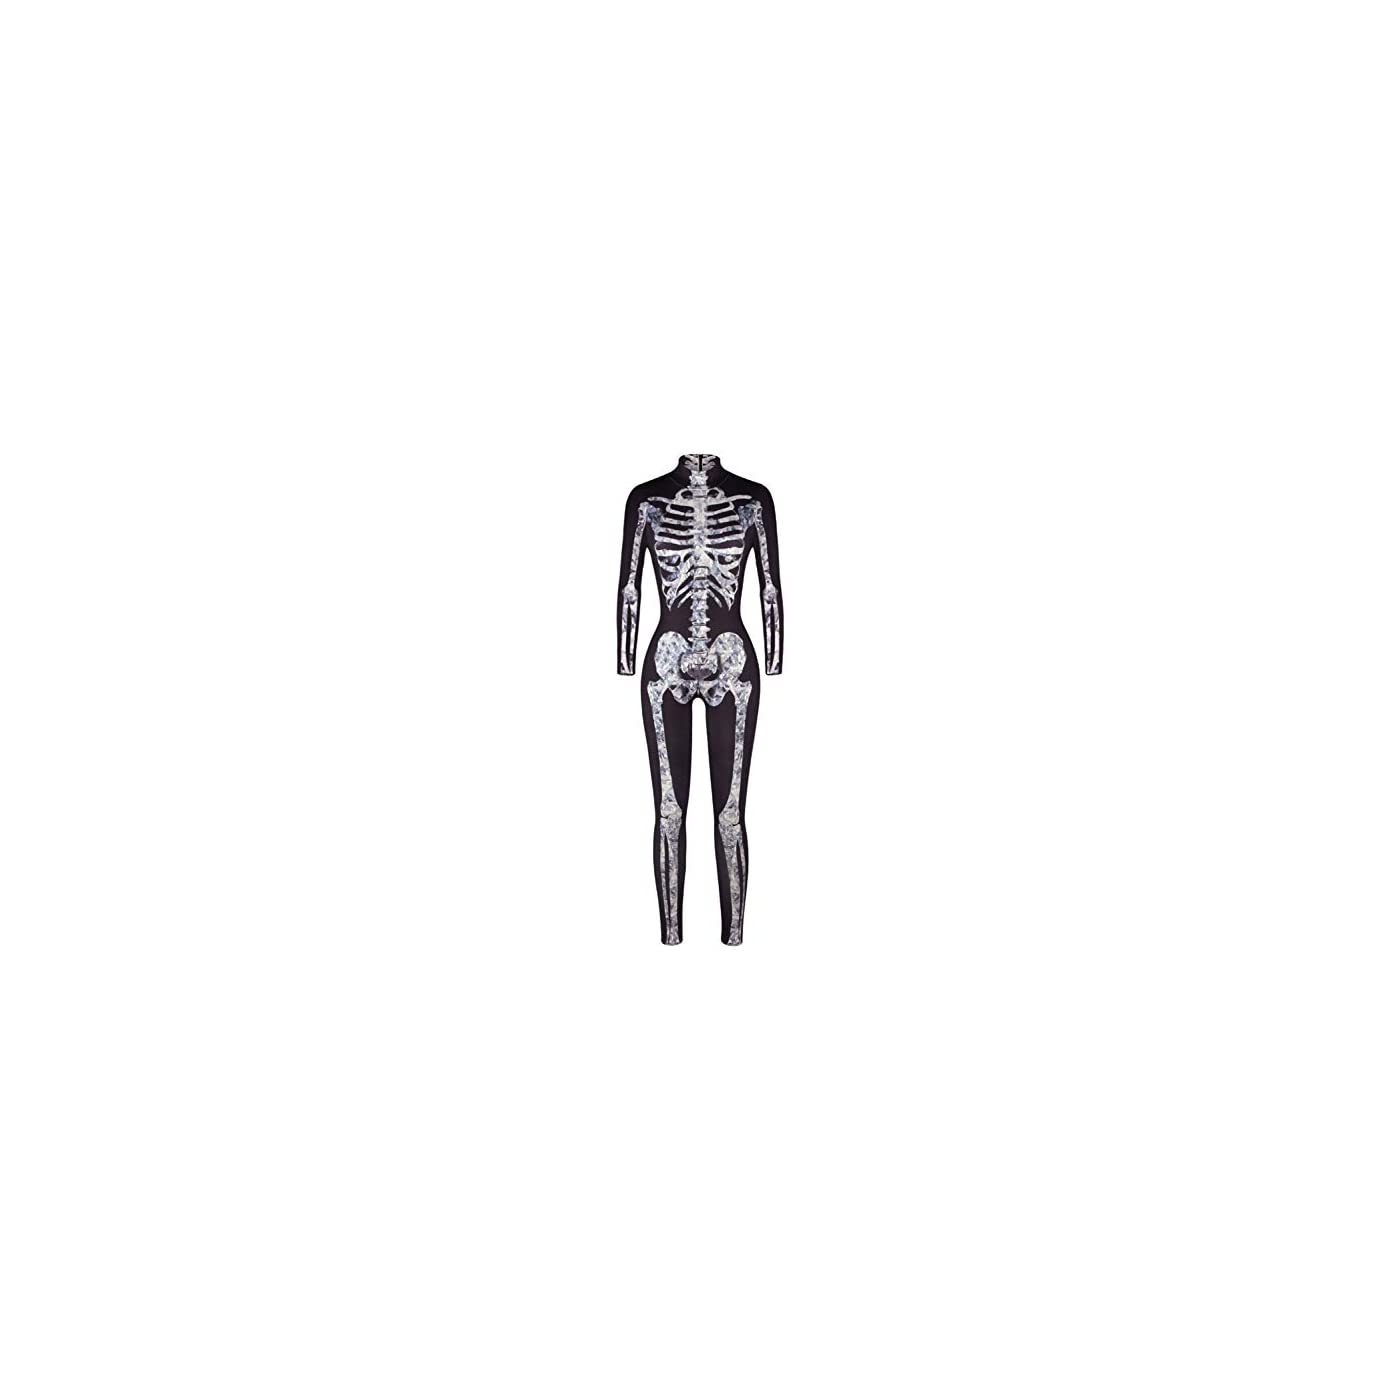 Uideazone Womens Halloween Cosplay Costume 3D Print Skull Skeleton Bodysuits Stretch Skinny Catsuit Overall Jumpsuit 41lYxoByEBL